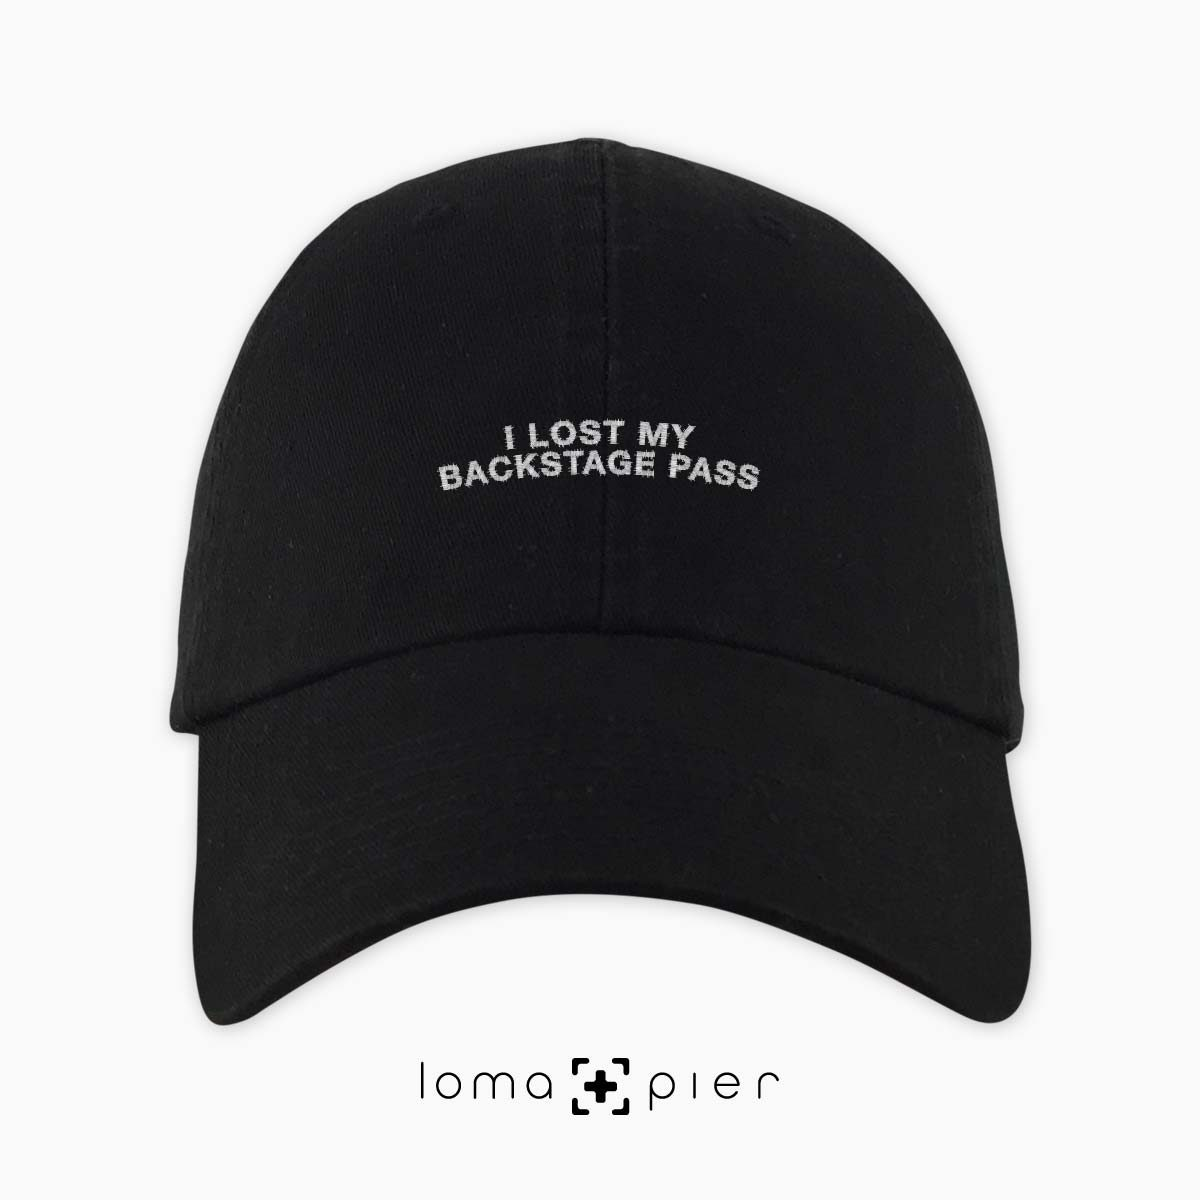 I LOST MY BACKSTAGE PASS music festival dad hat in black by loma+pier hat store made in the USA